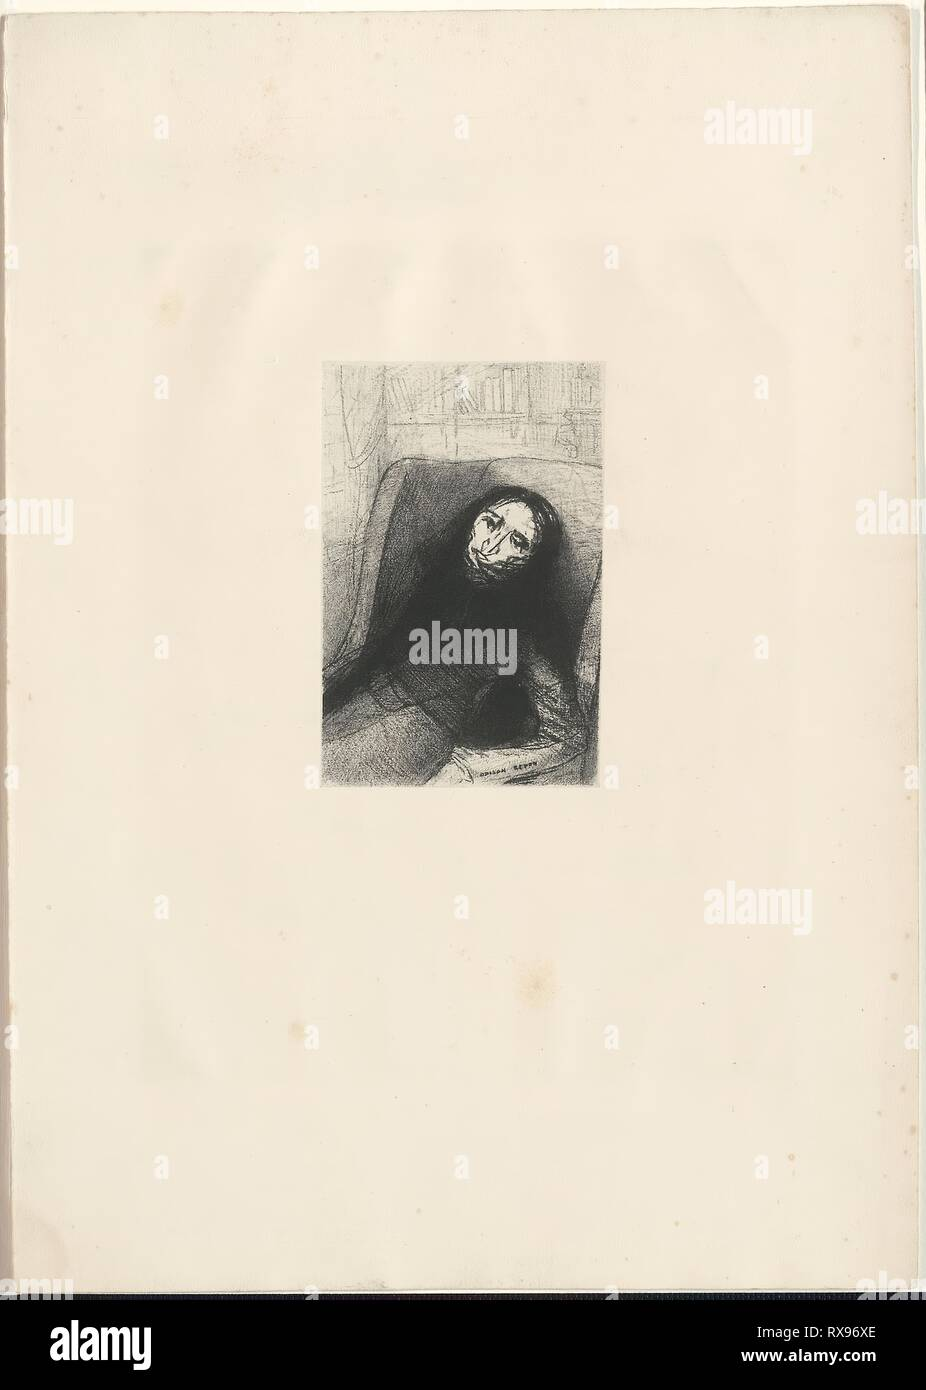 Des Esseintes. Odilon Redon (French, 1840-1916); written by Joris-Karl Huysmans (French, 1848-1907). Date: 1888. Dimensions: 149 × 96 mm (image); 280 × 374 mm (sheet). Lithograph on chine laid down on cream wove paper. Origin: France. Museum: The Chicago Art Institute. Stock Photo